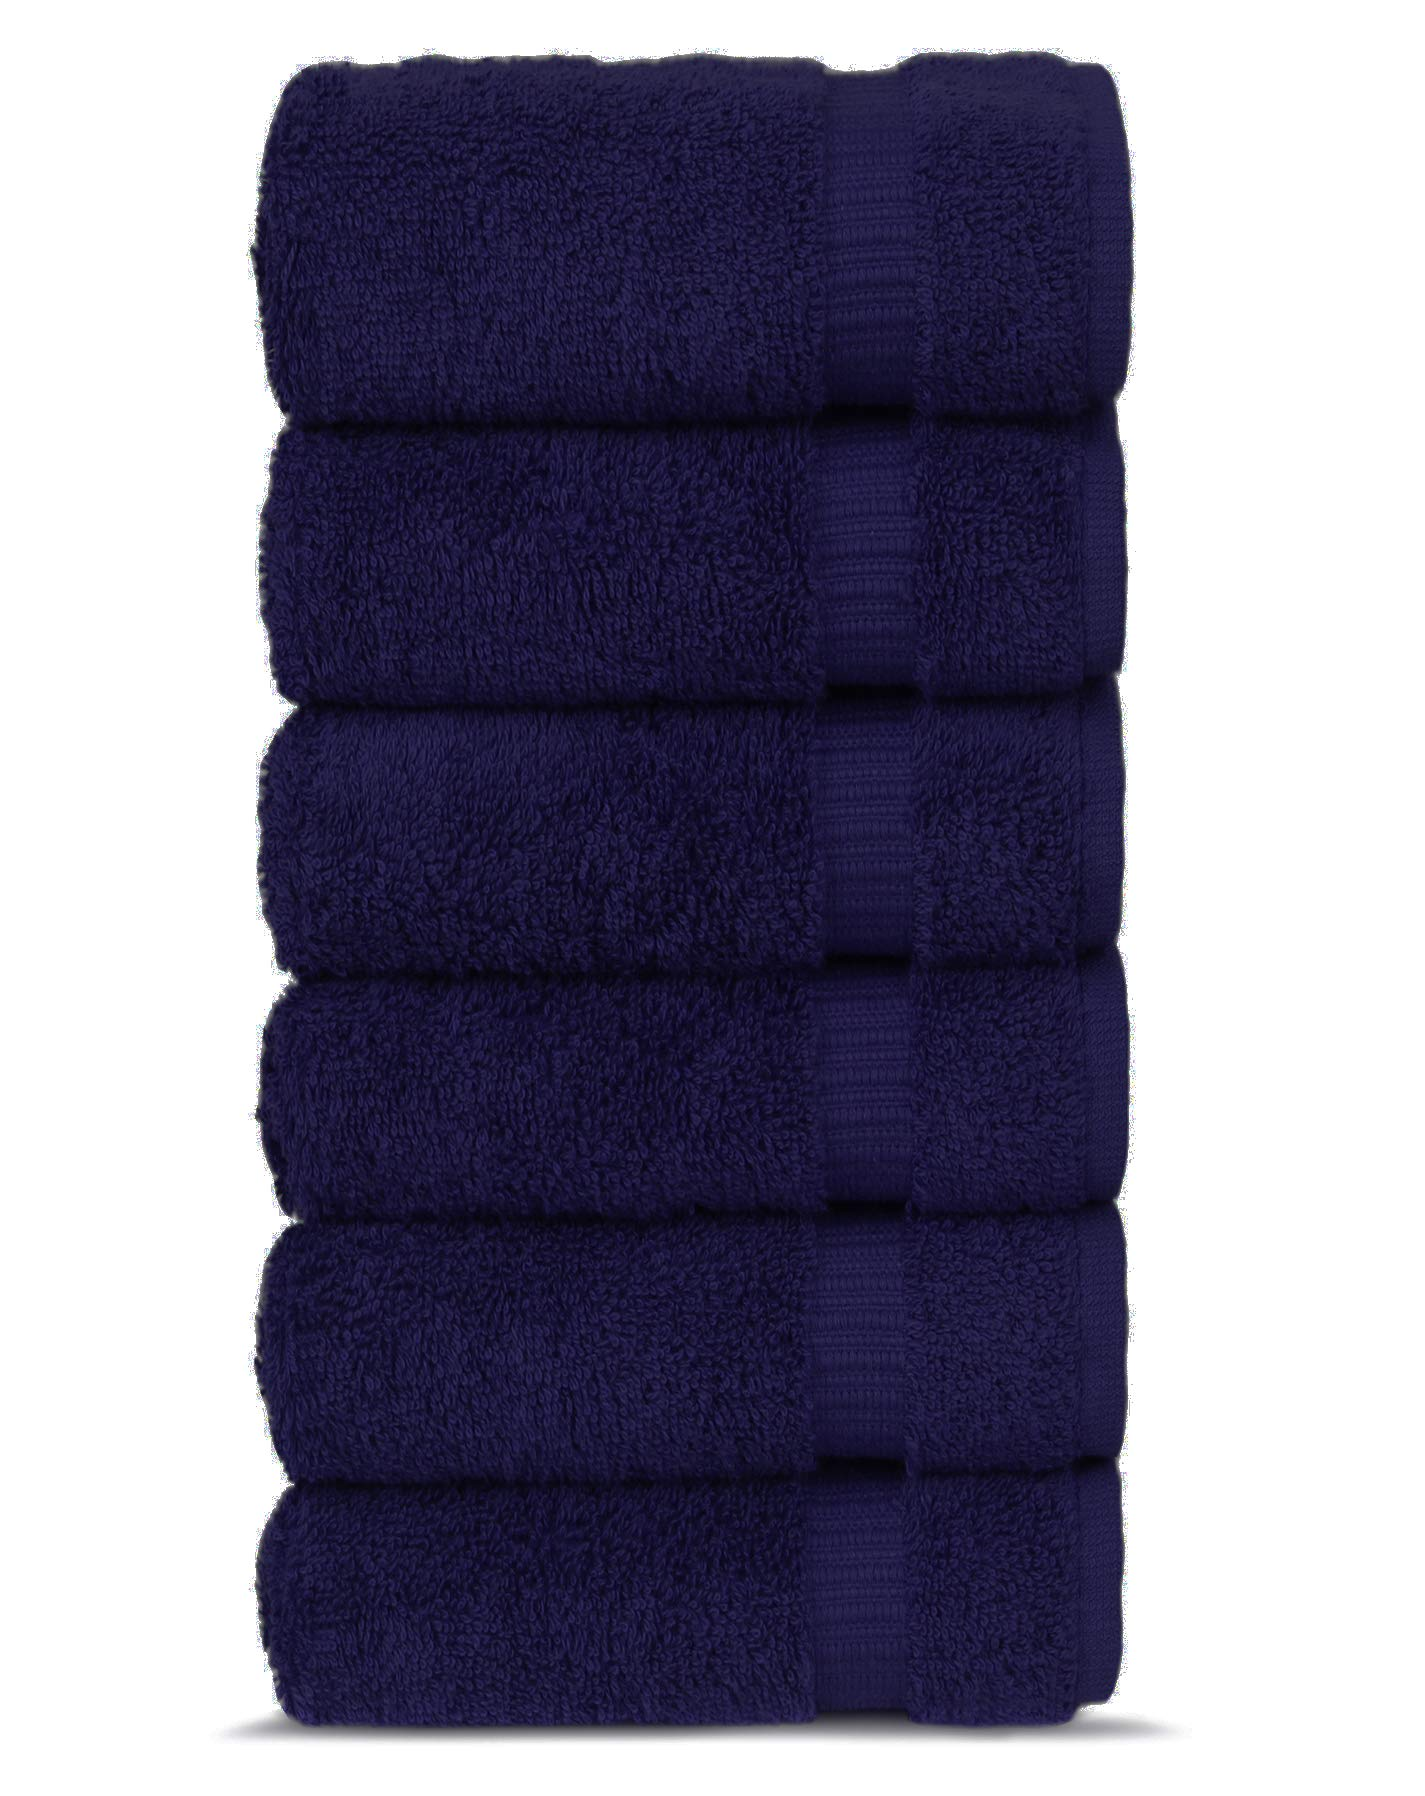 Chakir Turkish Linens Turkish Cotton 16x30 Luxury Hotel & Spa 6 Pack Hand Towel, Navy